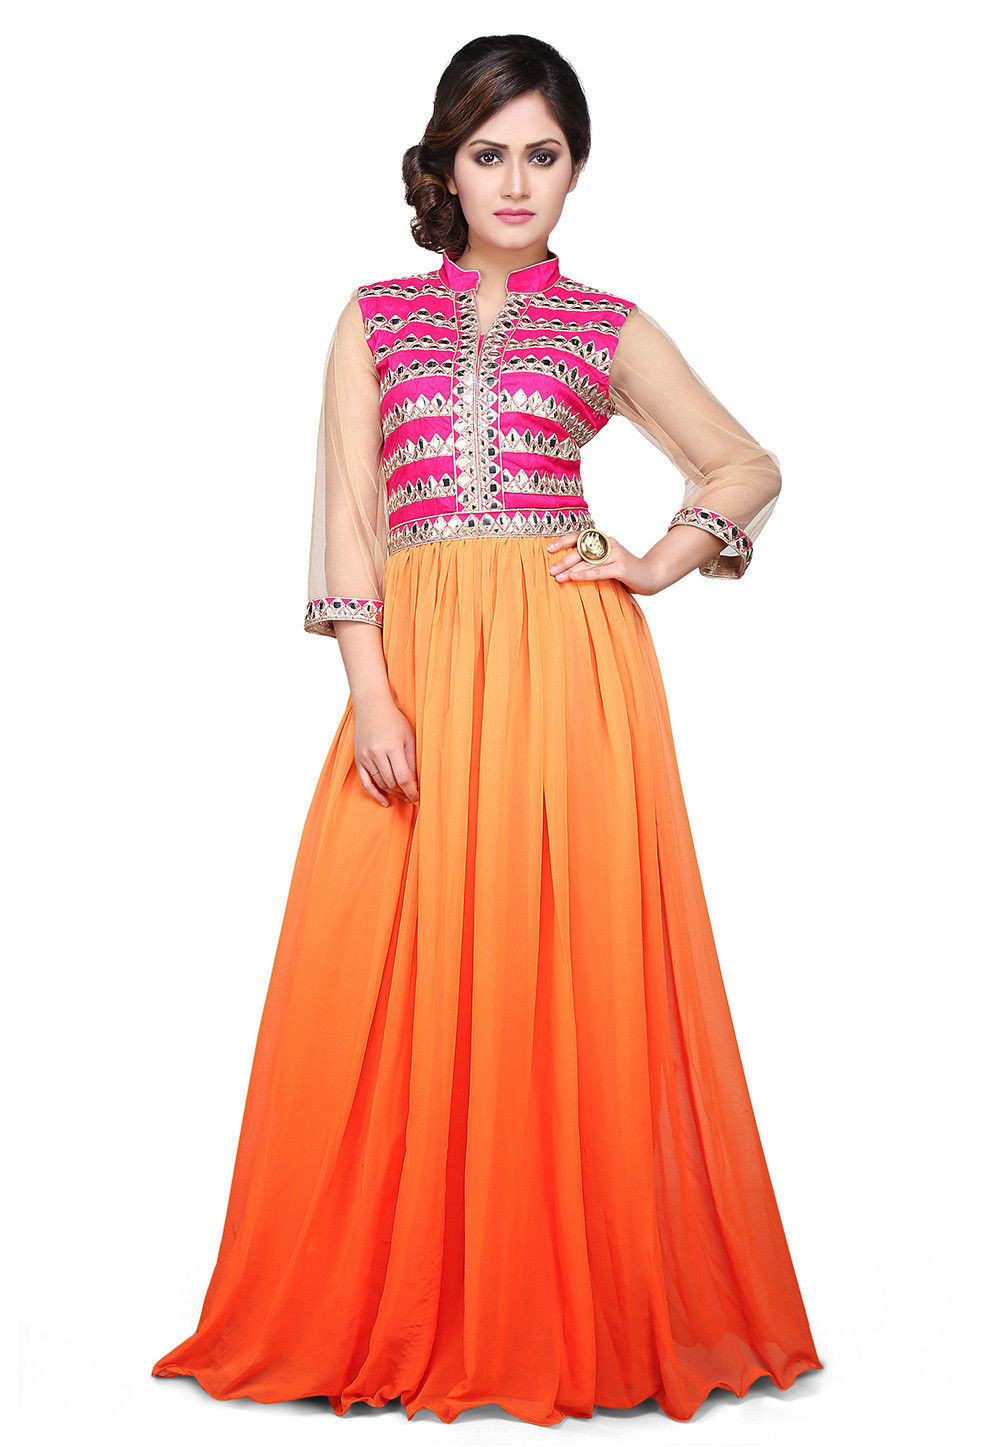 Embroidered Georgette Gown in Orange Ombre and Fuchsia